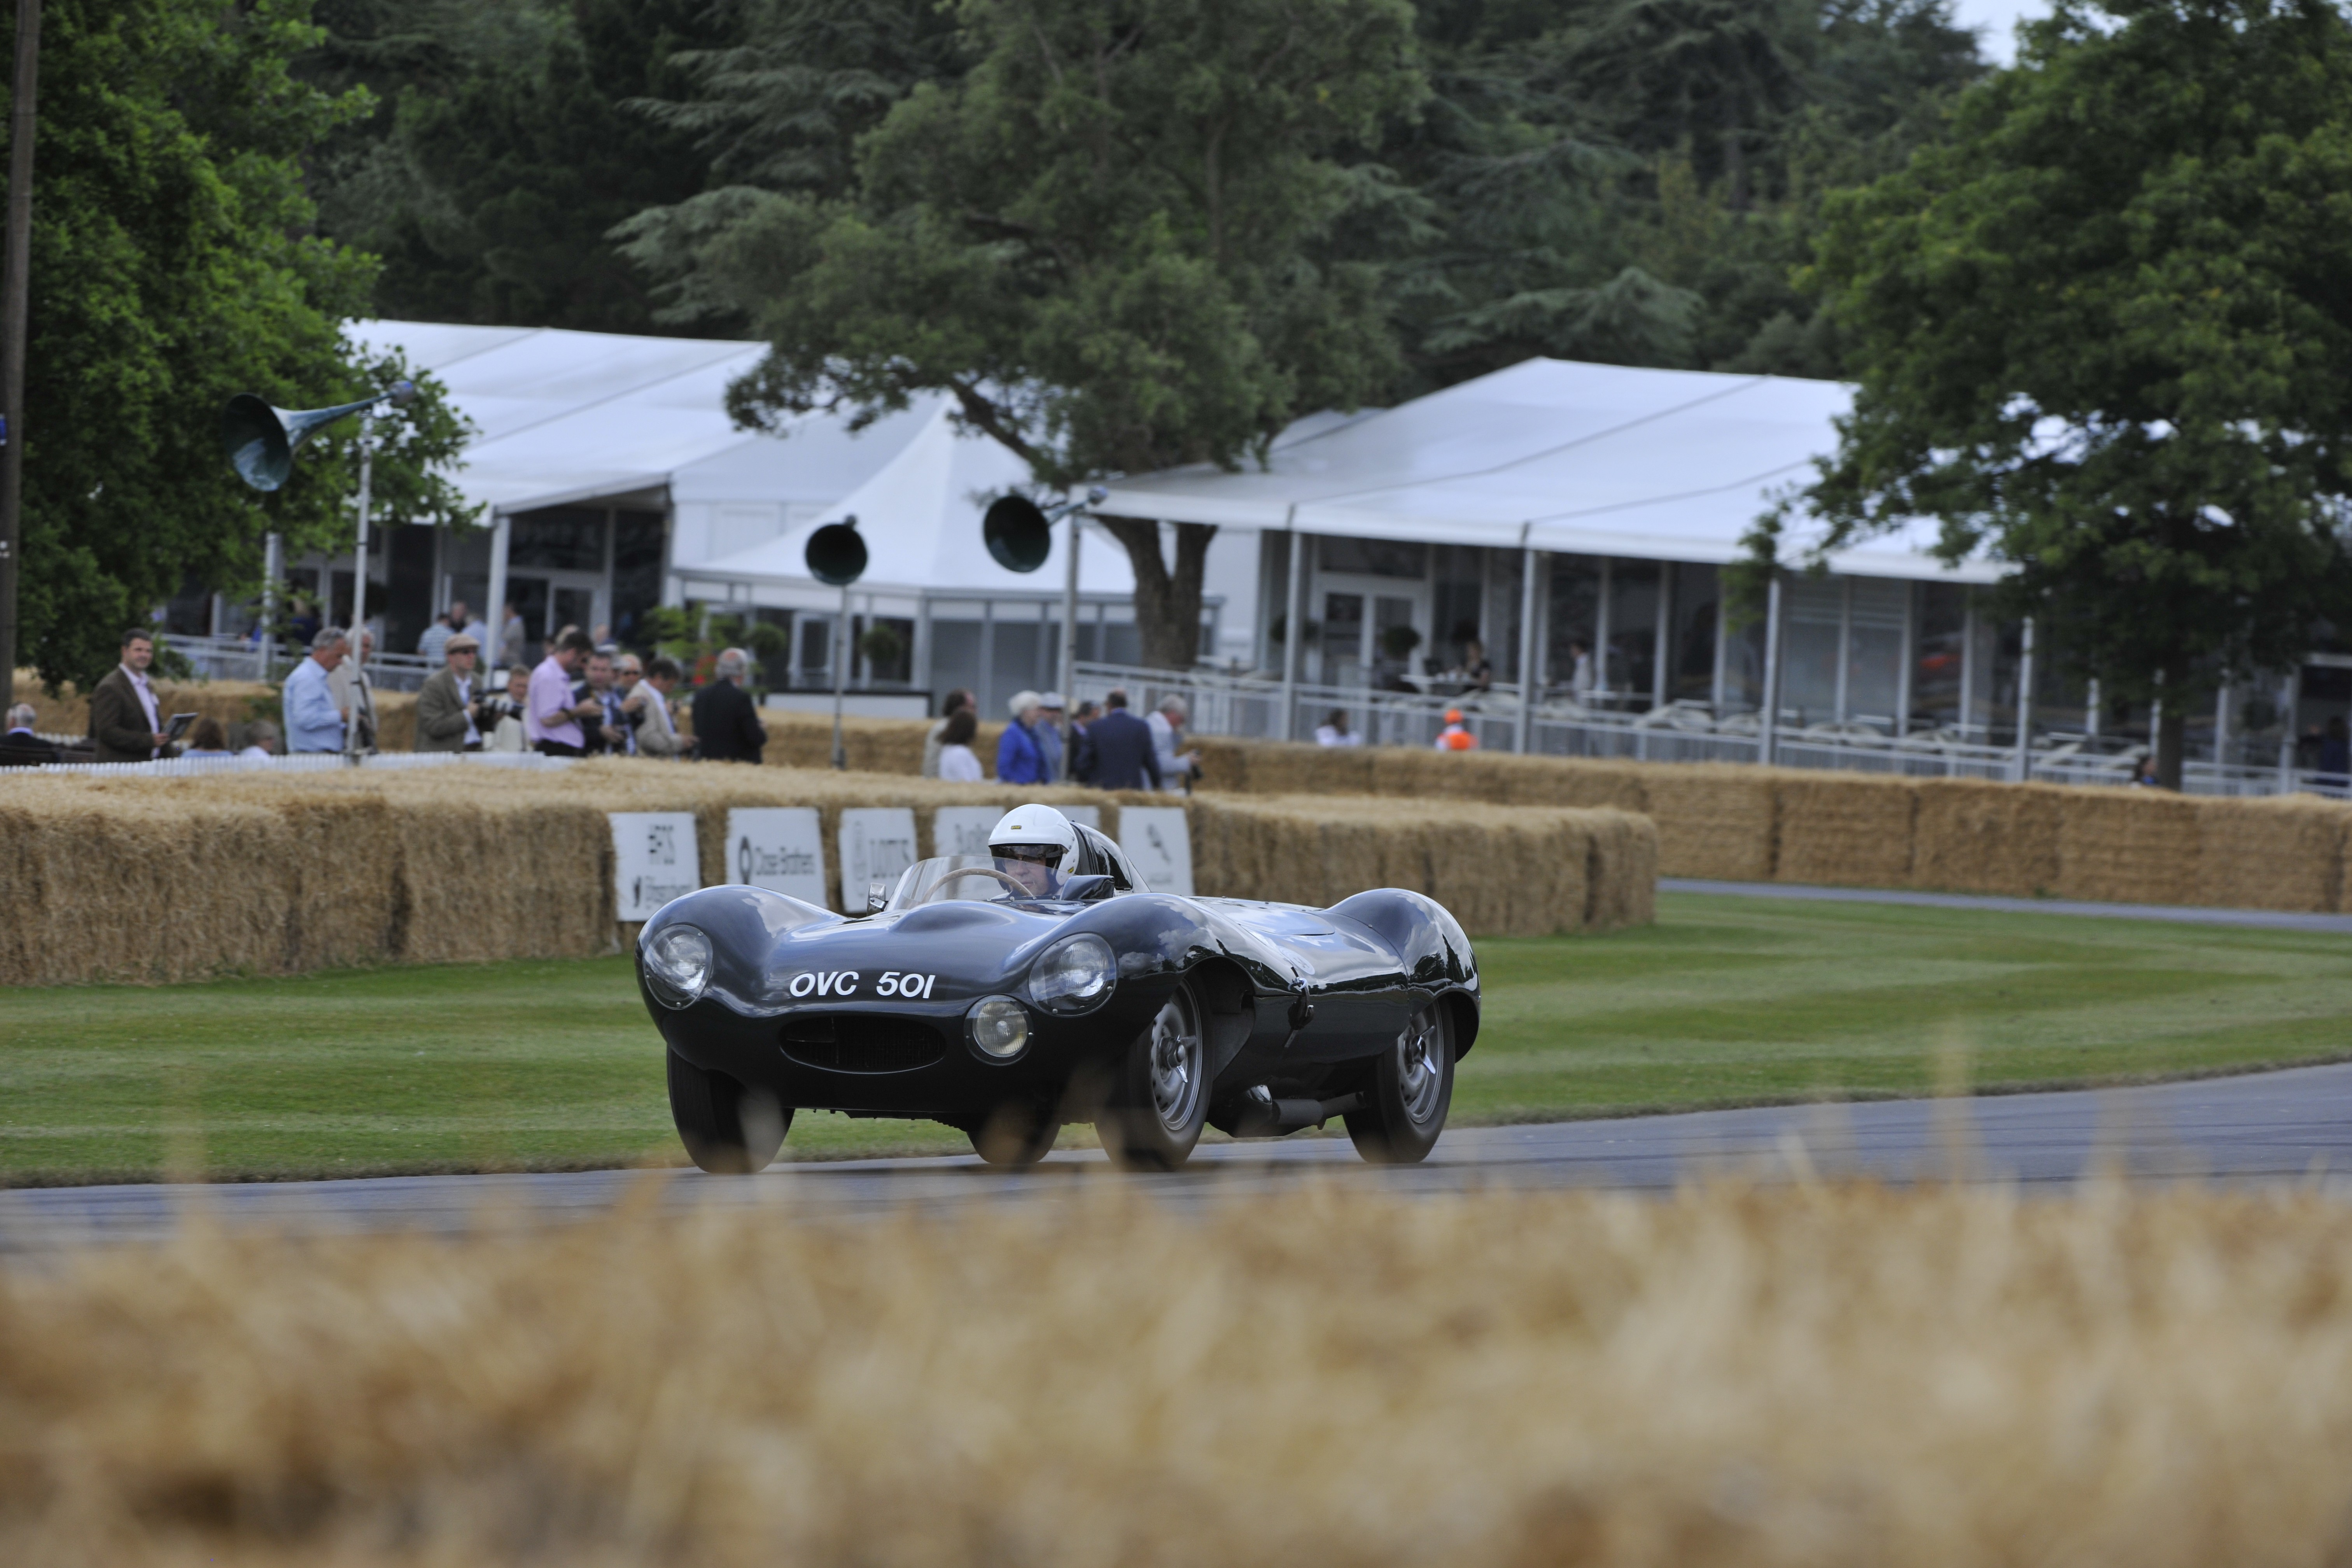 Before Jaguar started to produce the D-Type, a small group of pre-production cars were made starting with the prototype chassis XKC401. This car became the testbed for the new ideas that Malcom Sayer and others would implement into their already winning C-Type design. Our feature car also has the distinction of remaining in largely original condition and is easily spotted by its long-time OVC501.